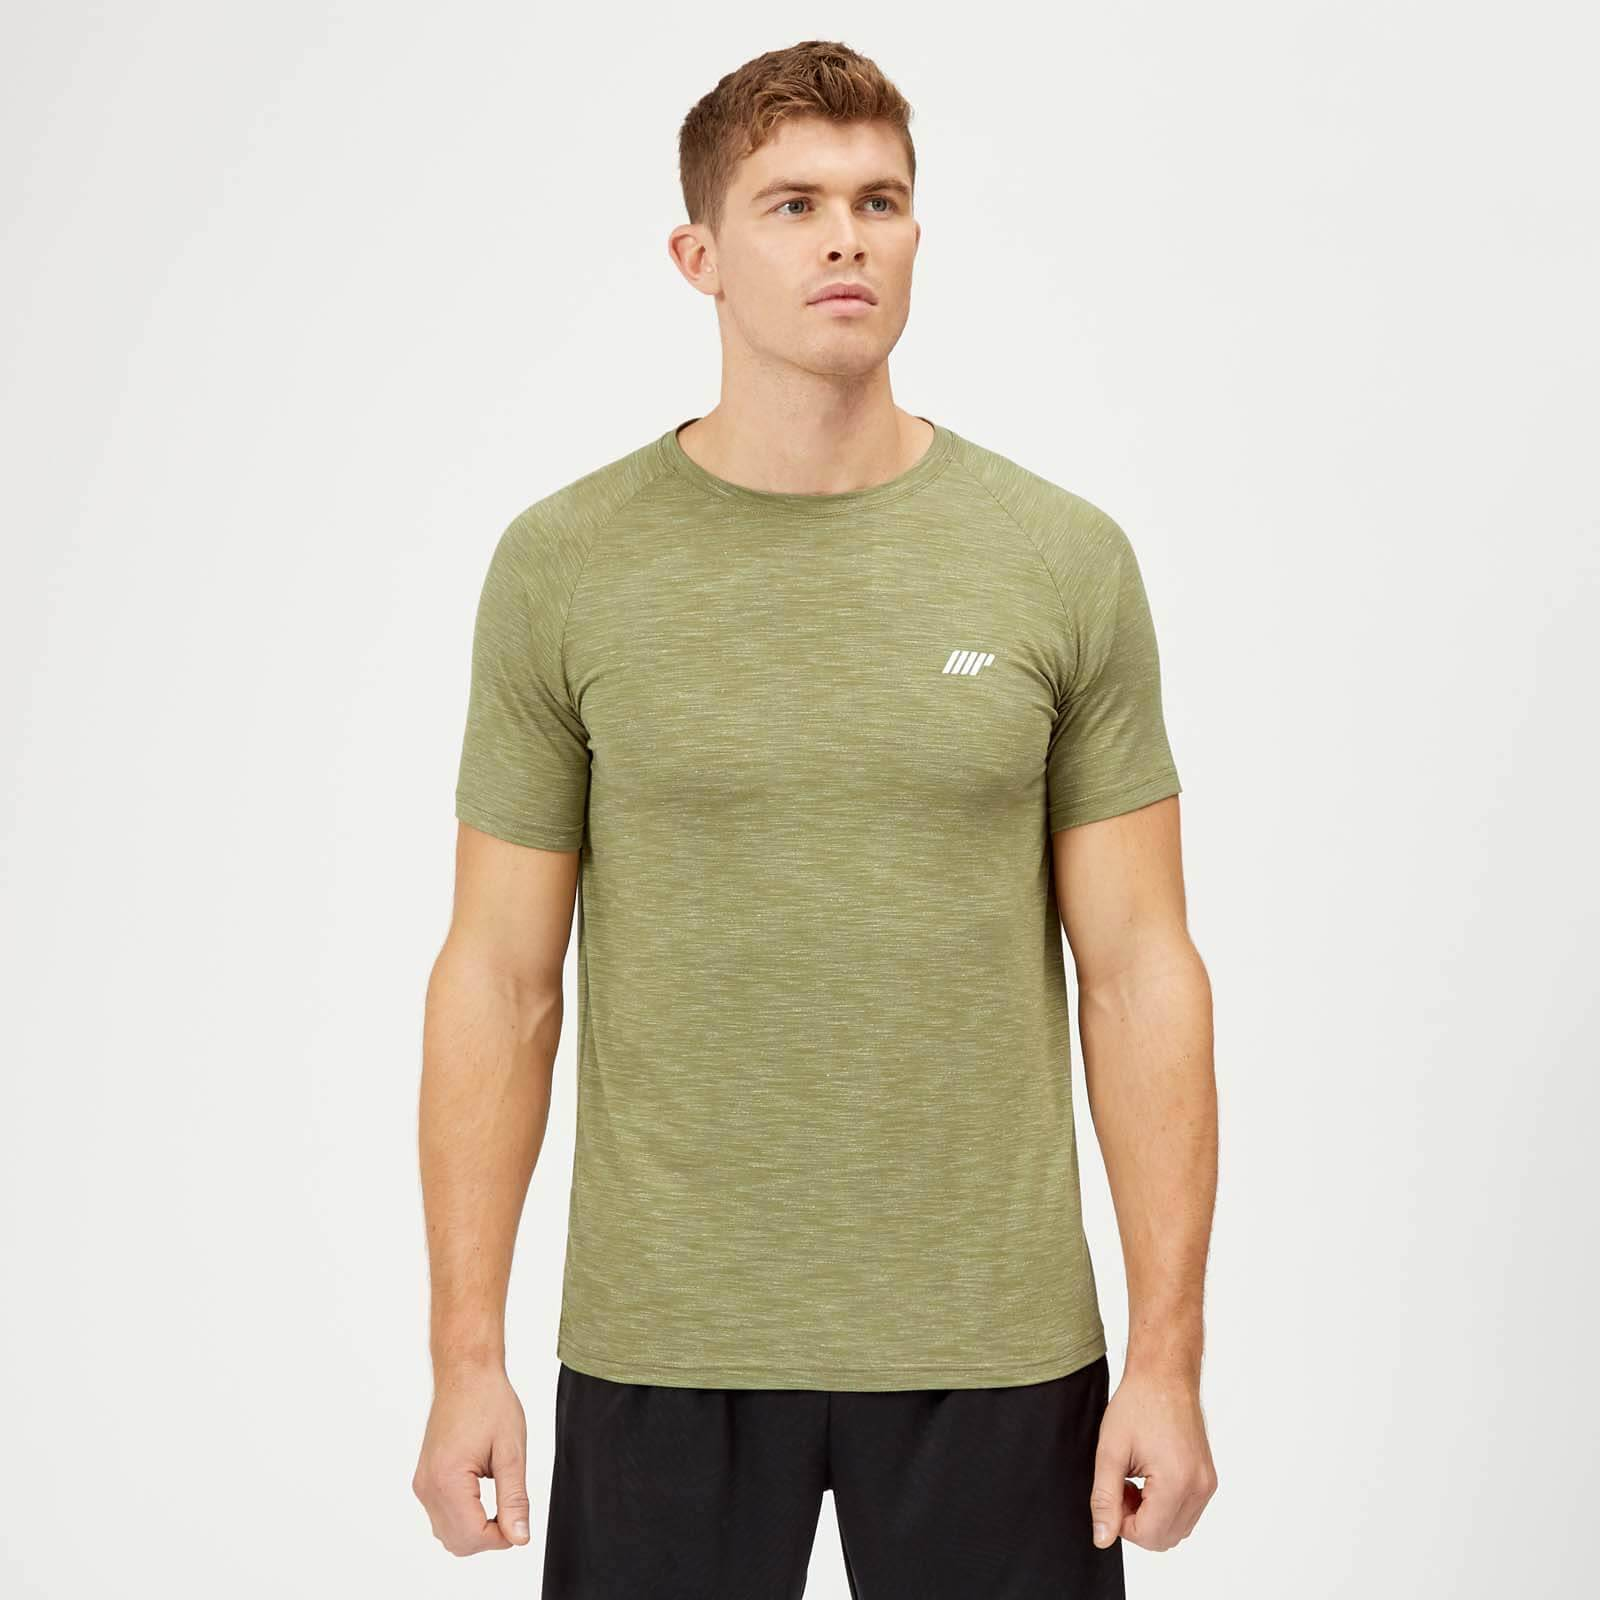 Myprotein T-Shirt Performance Edizione Limitata - S - Light Olive